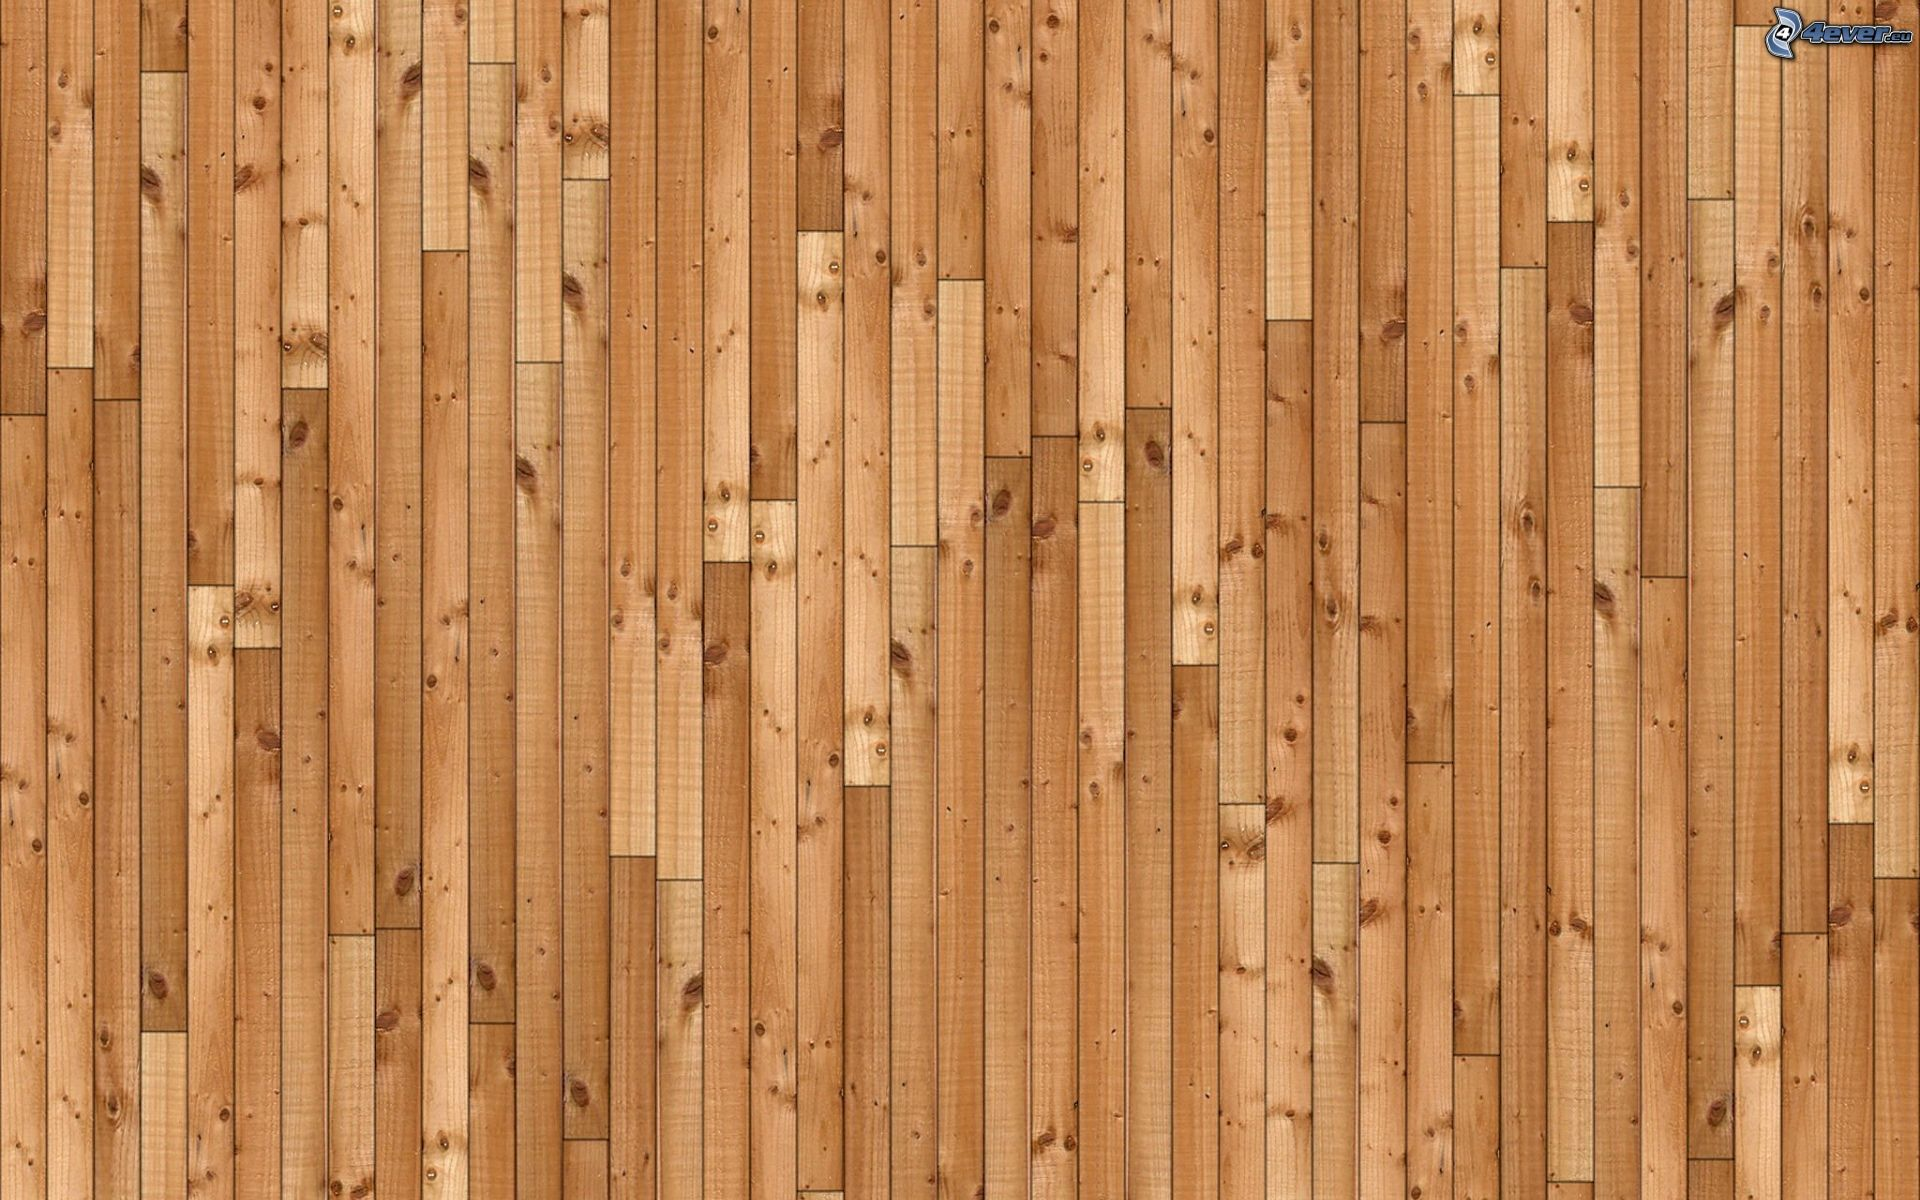 Pared de madera for Paredes con madera